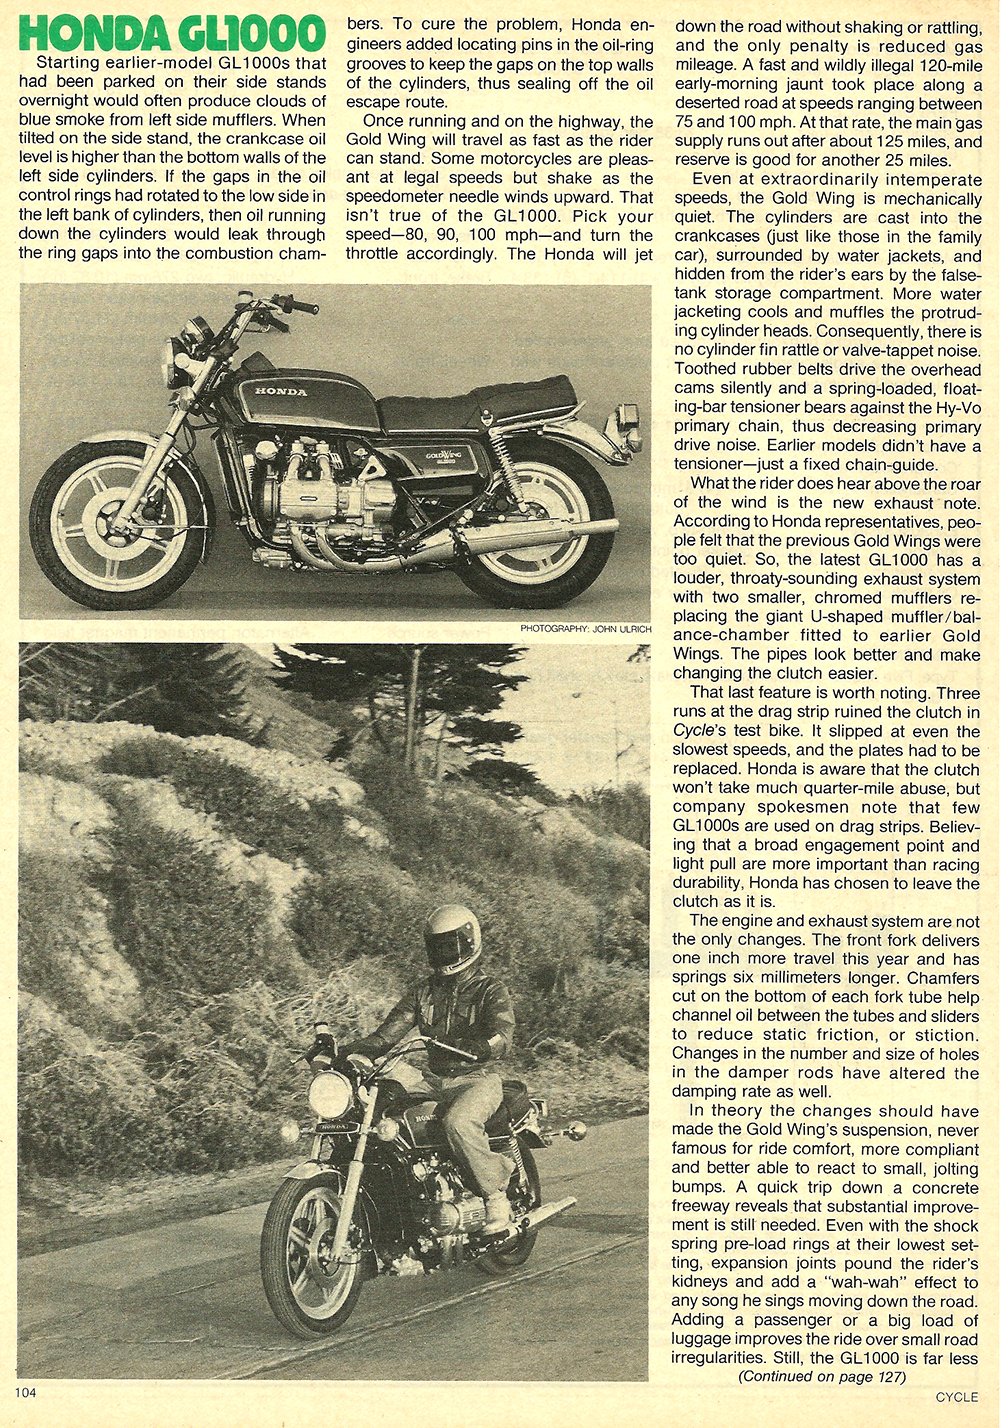 1978 Honda GL1000 road test 05.jpg